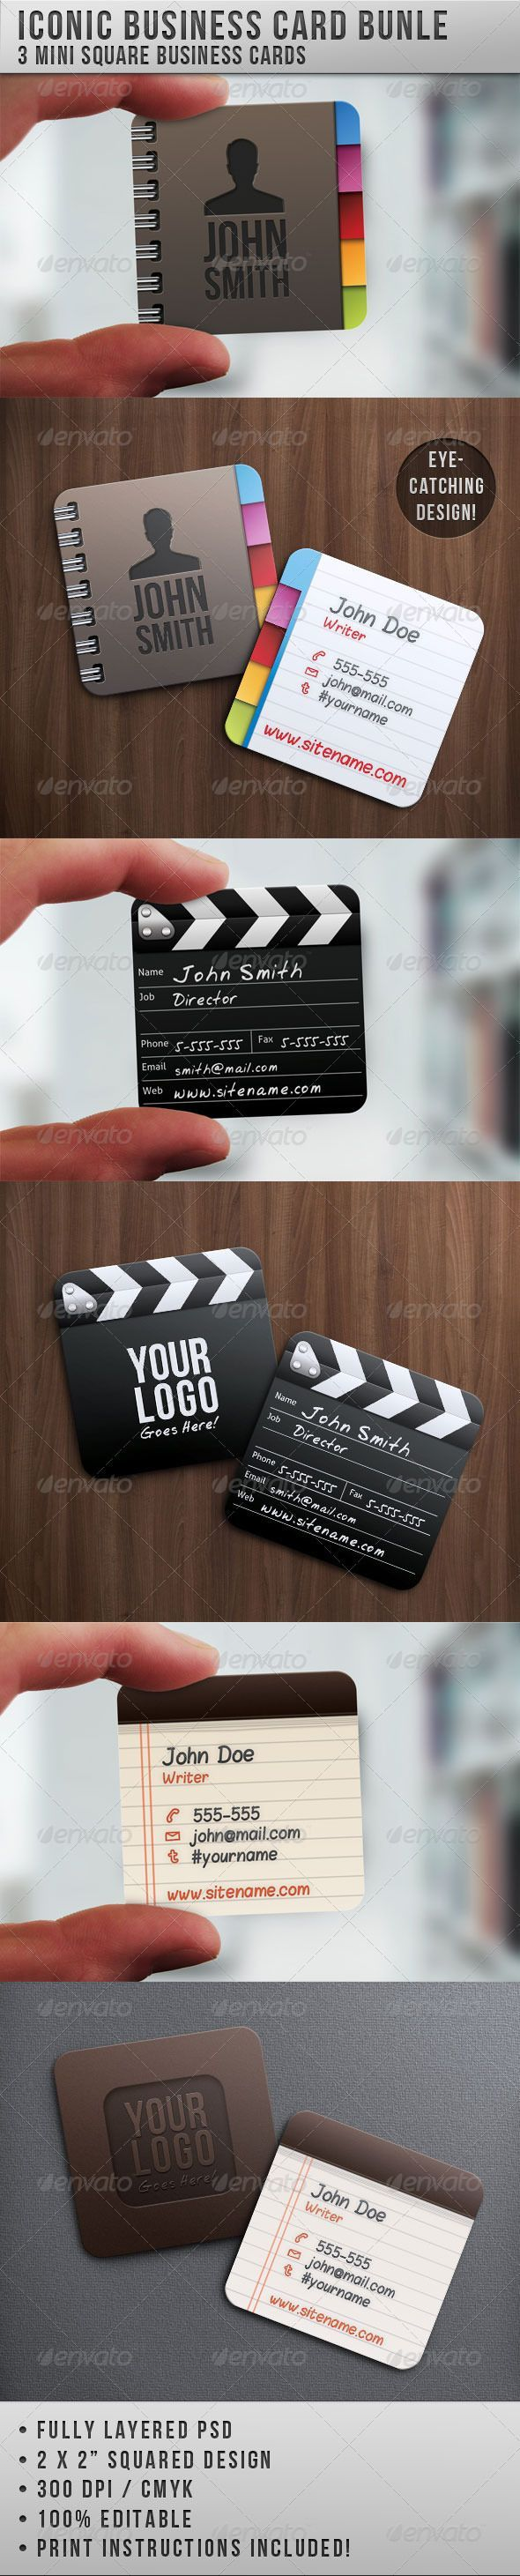 54 best Business Card images on Pinterest | Best business cards ...